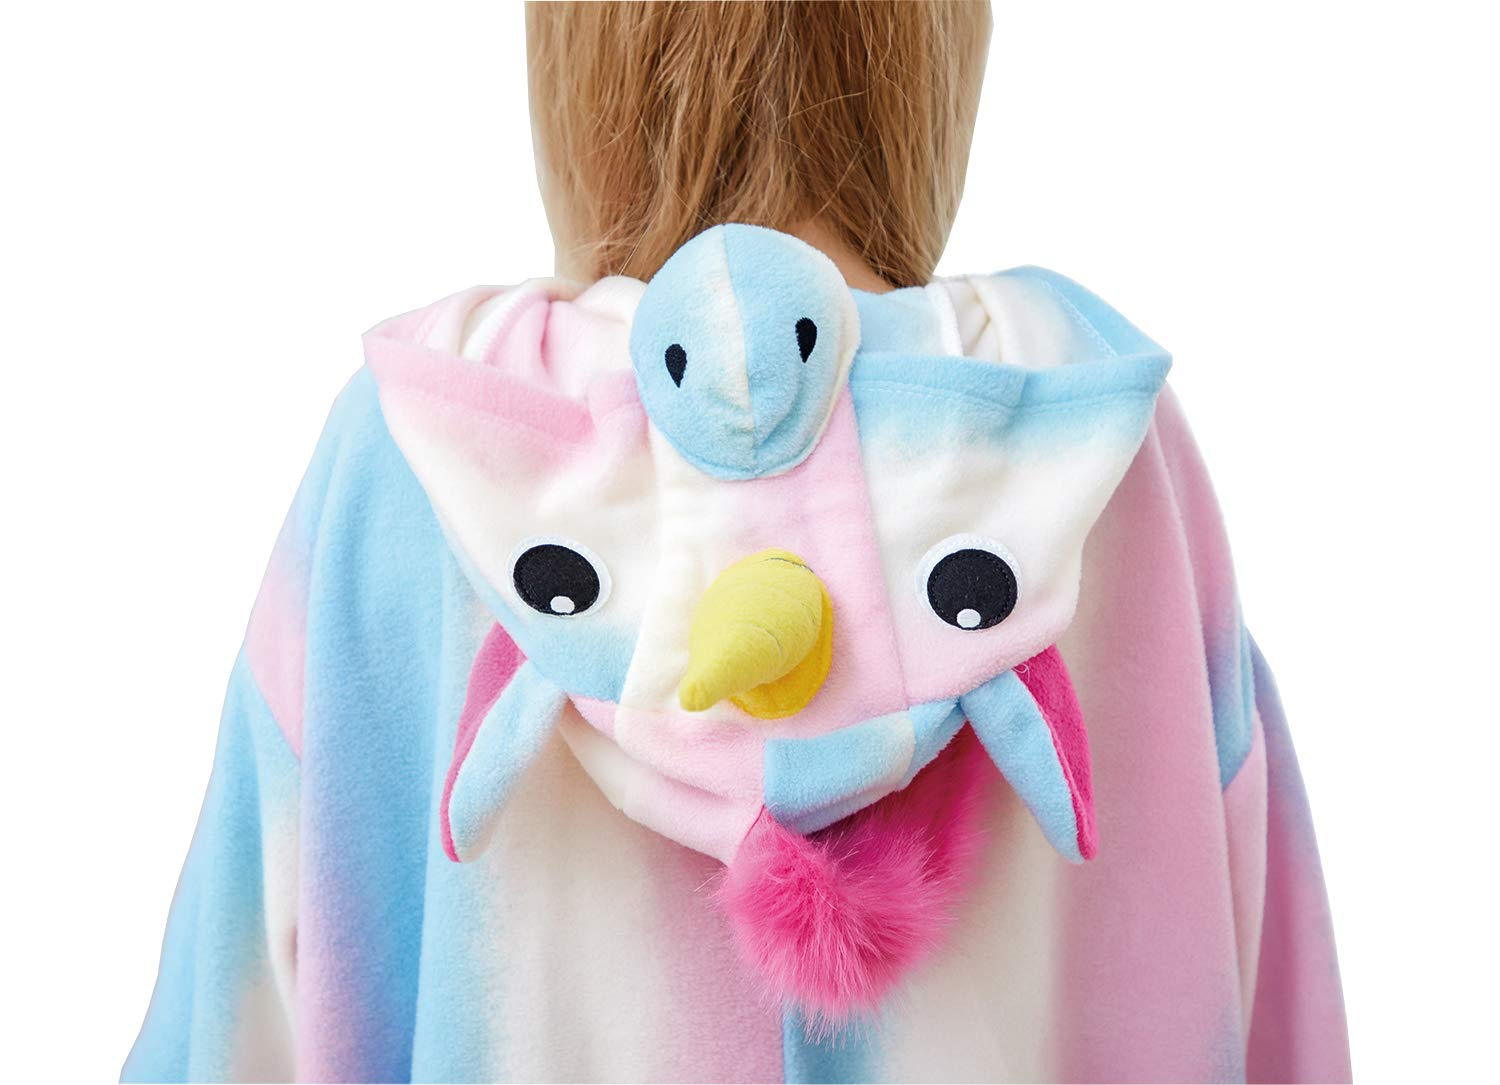 Unisex Adult Cute Animal Pajamas Onesies,One-Piece Cosplay Costume Jumpsuit Outfit XL by Mybei (Image #7)